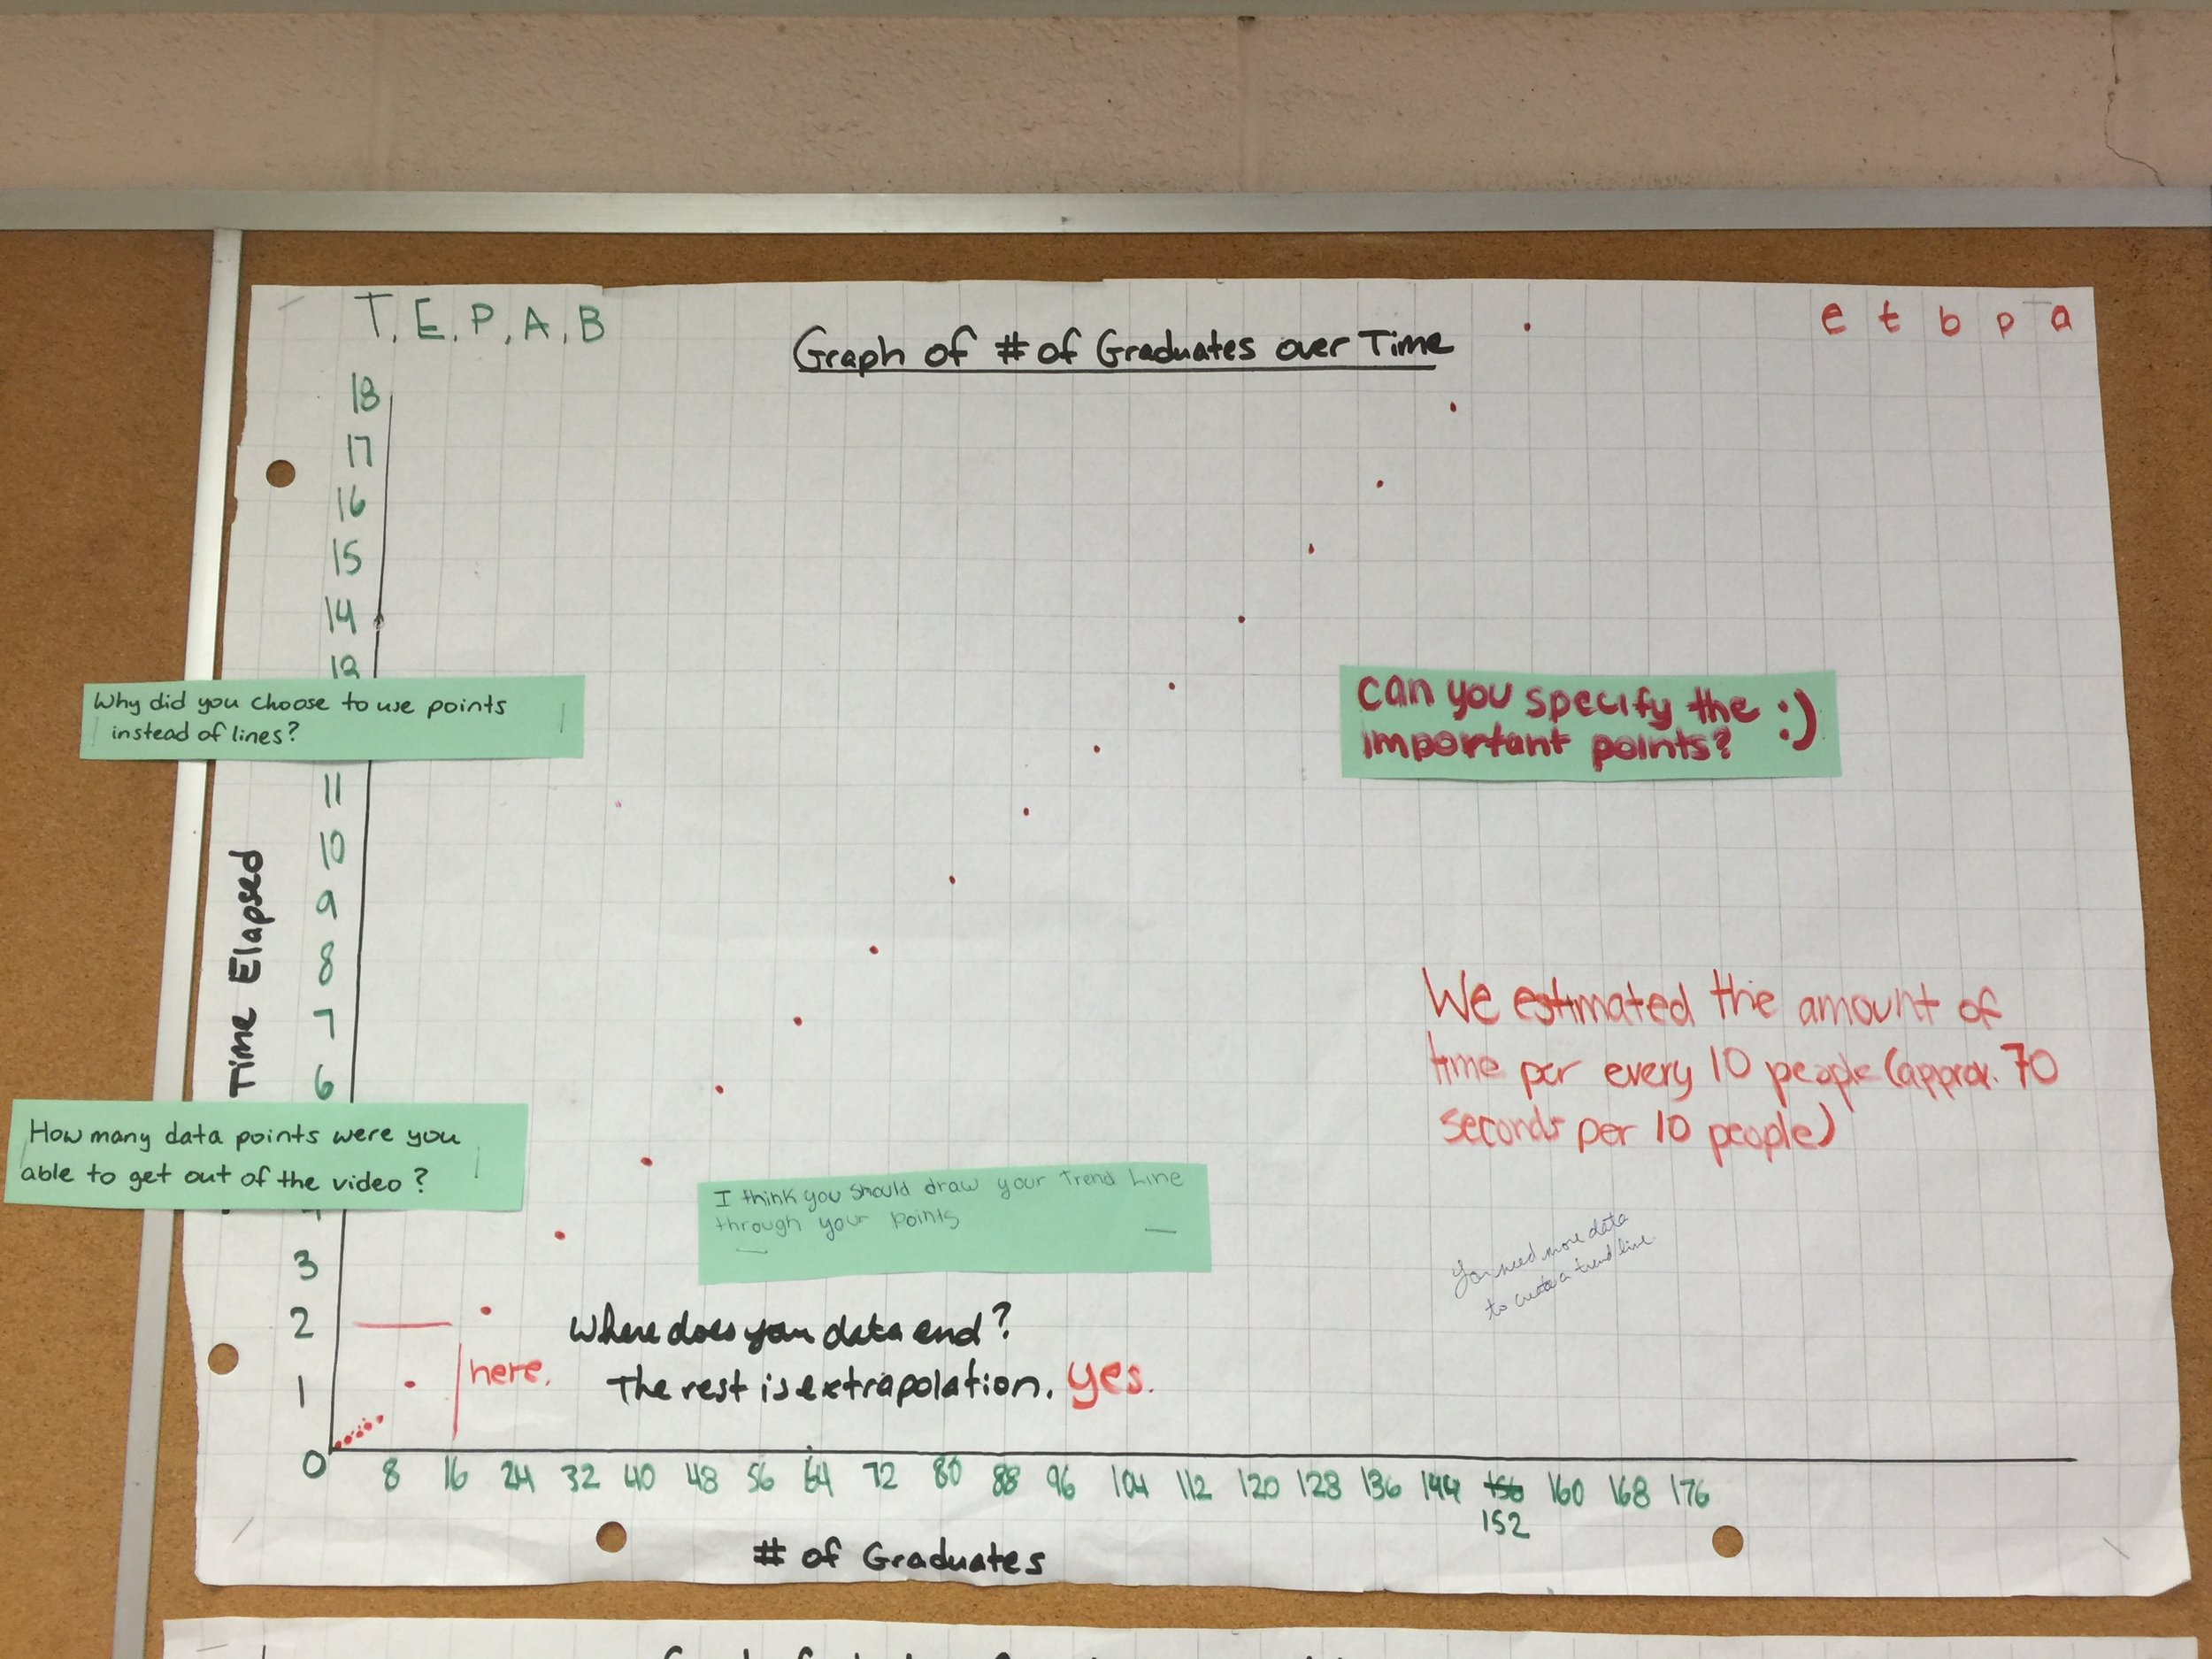 the-graduation-graph-4.jpg